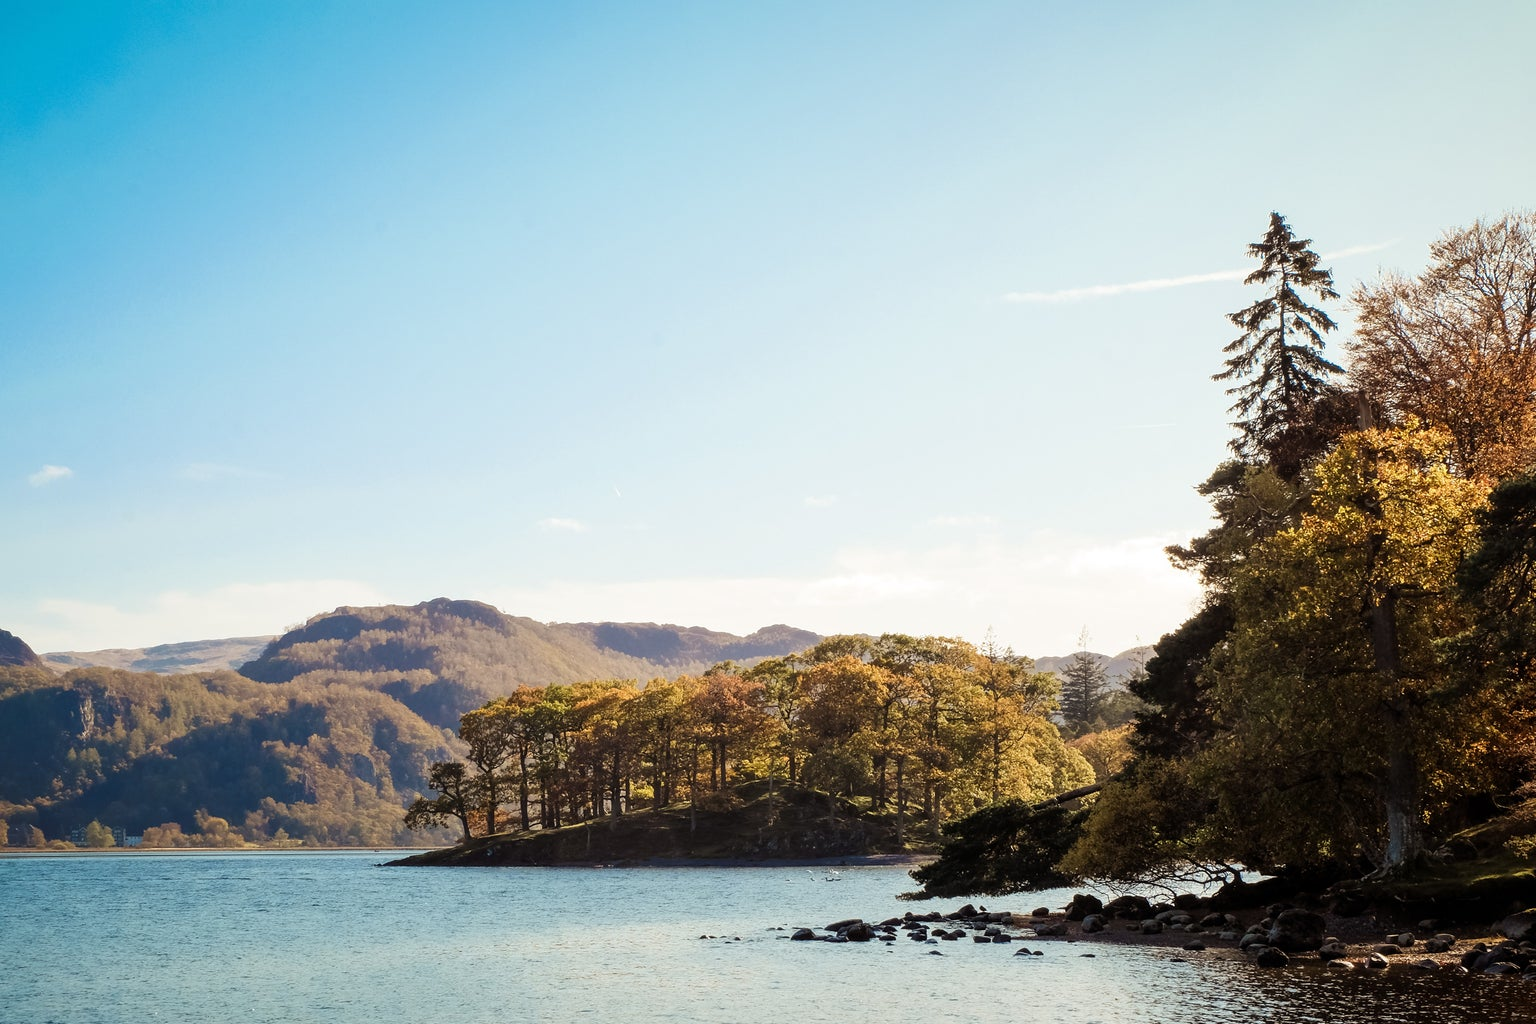 m,ountains, lake and trees in the Lake District